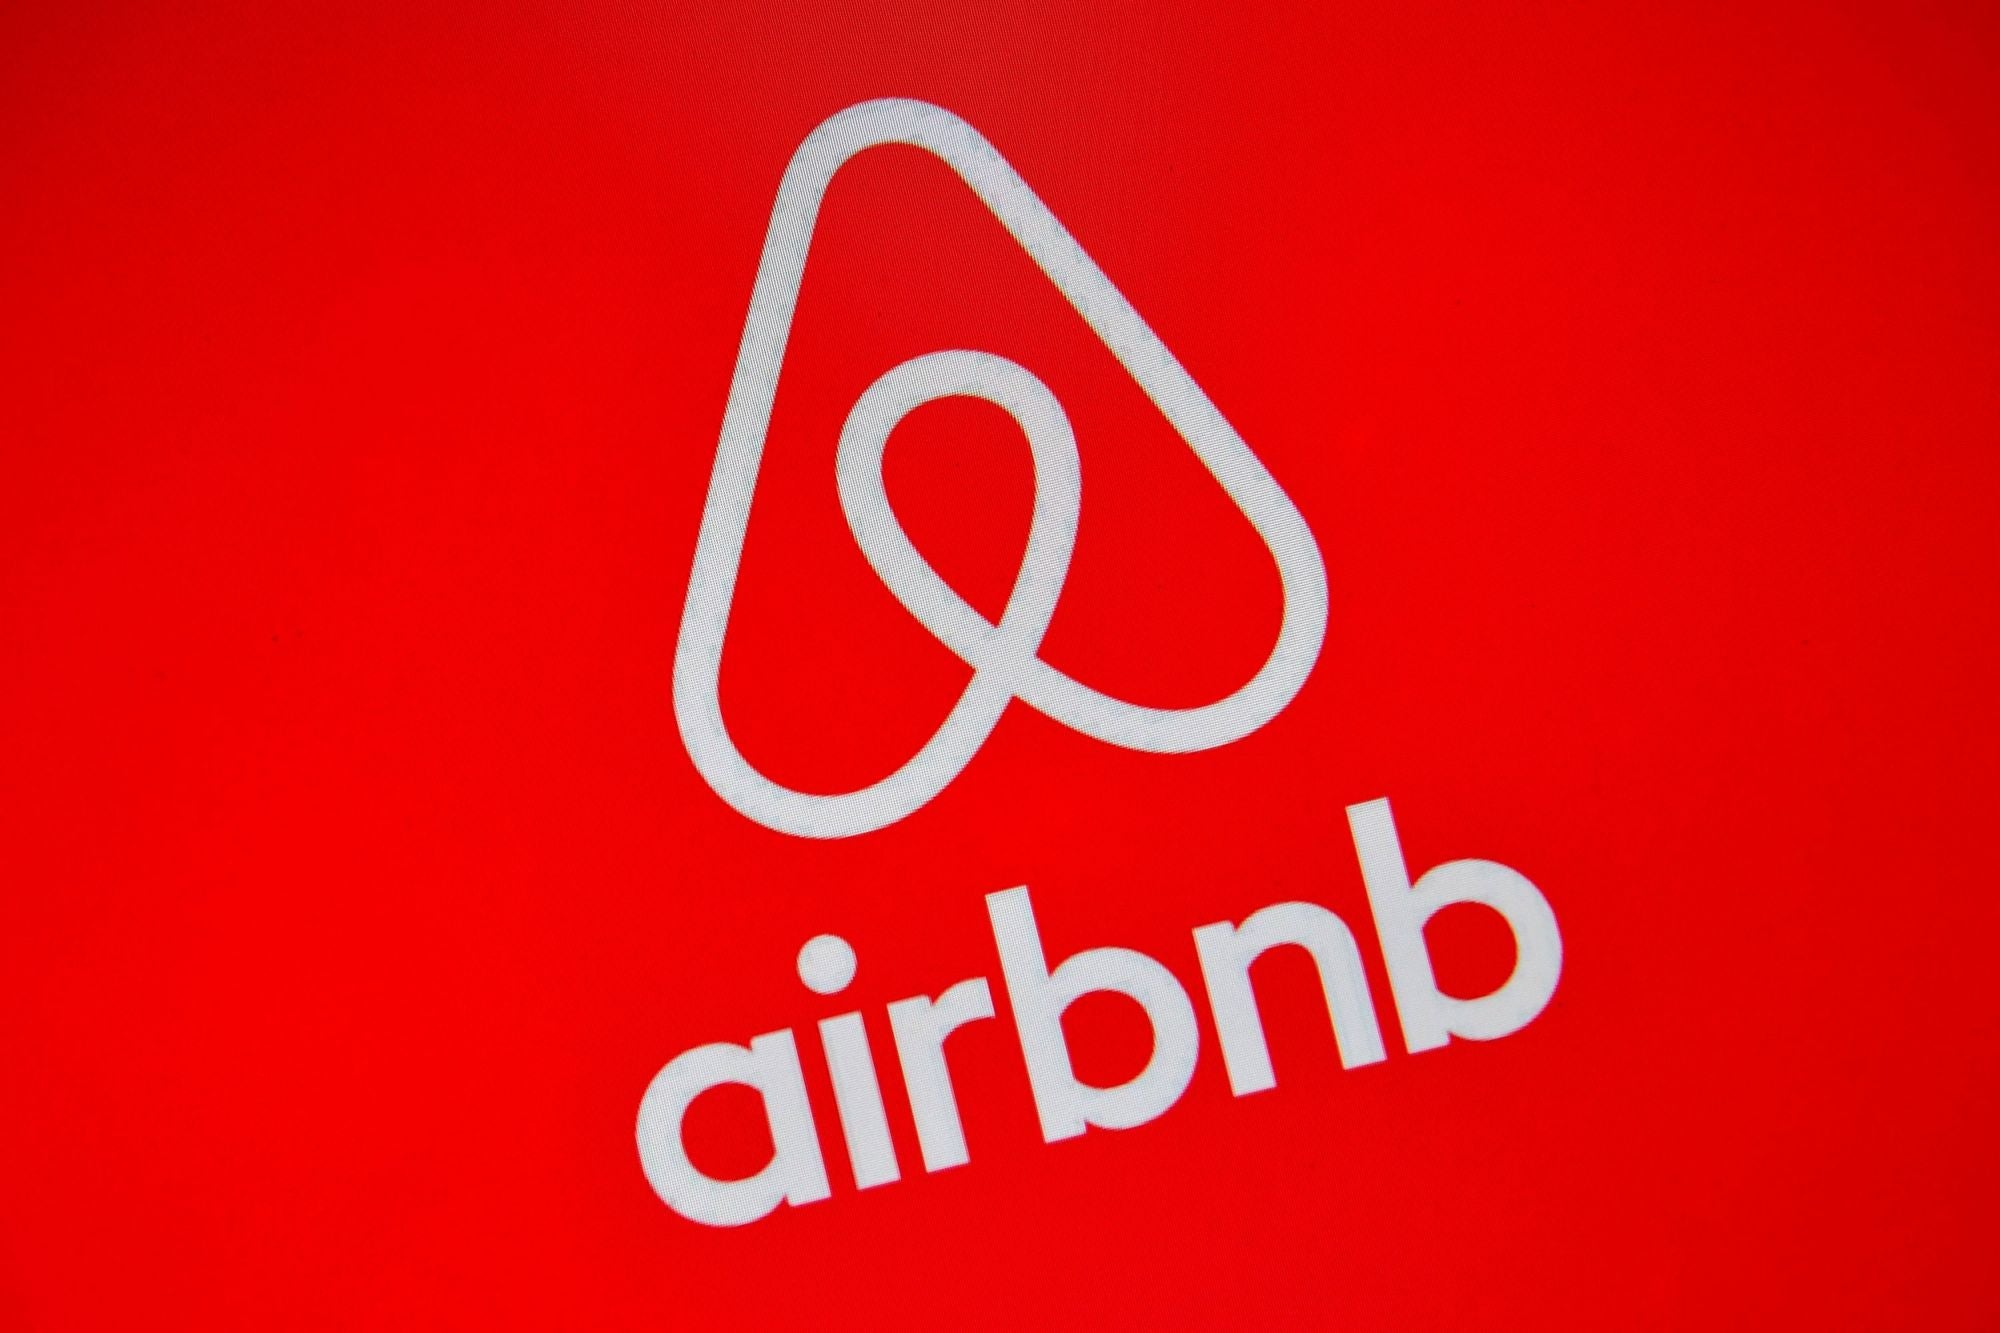 COVID-19 Forces Airbnb to Cut 25 Percent of Workforce, Scale Back Business